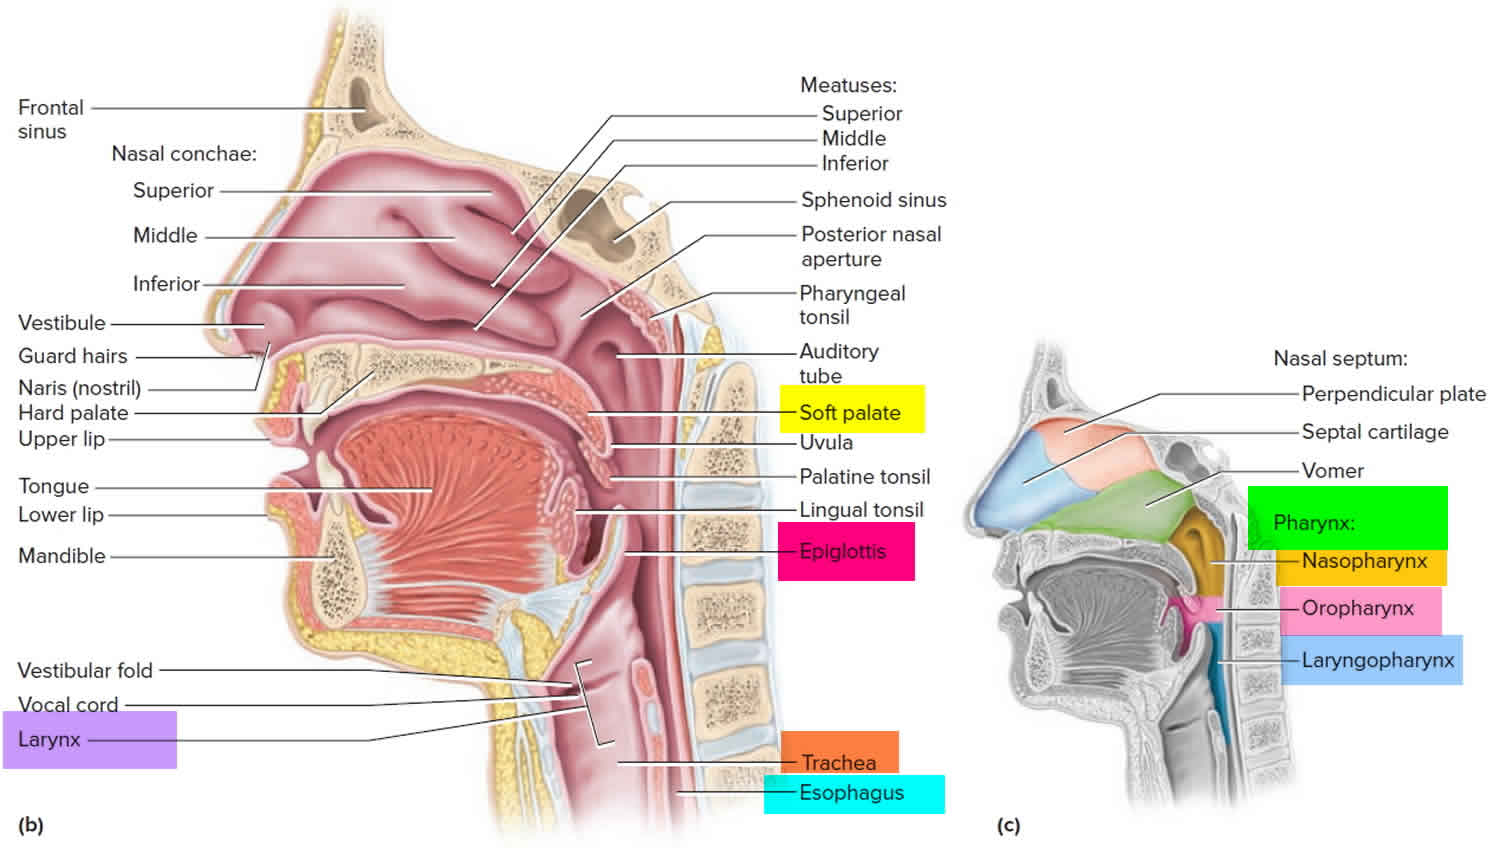 Larynx and pharynx anatomy